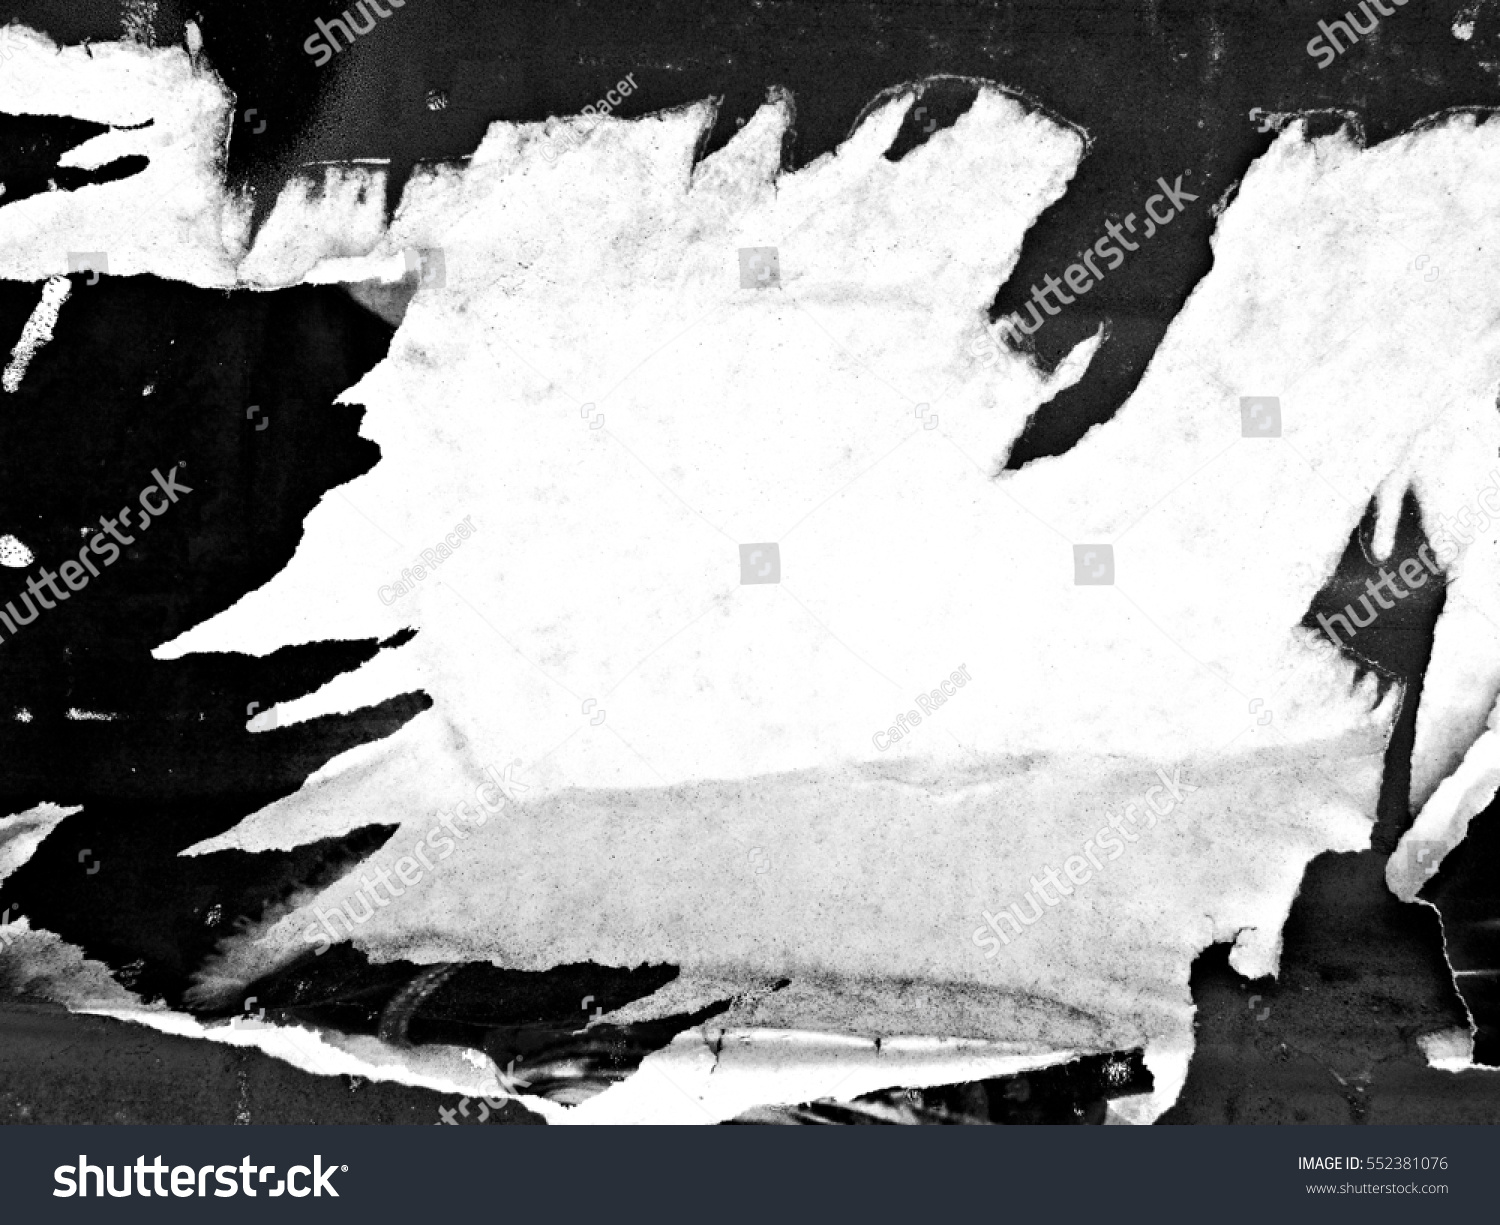 Old grunge ripped torn vintage collage posters and creased crumpled paper surface texture background placard / Space for text #552381076